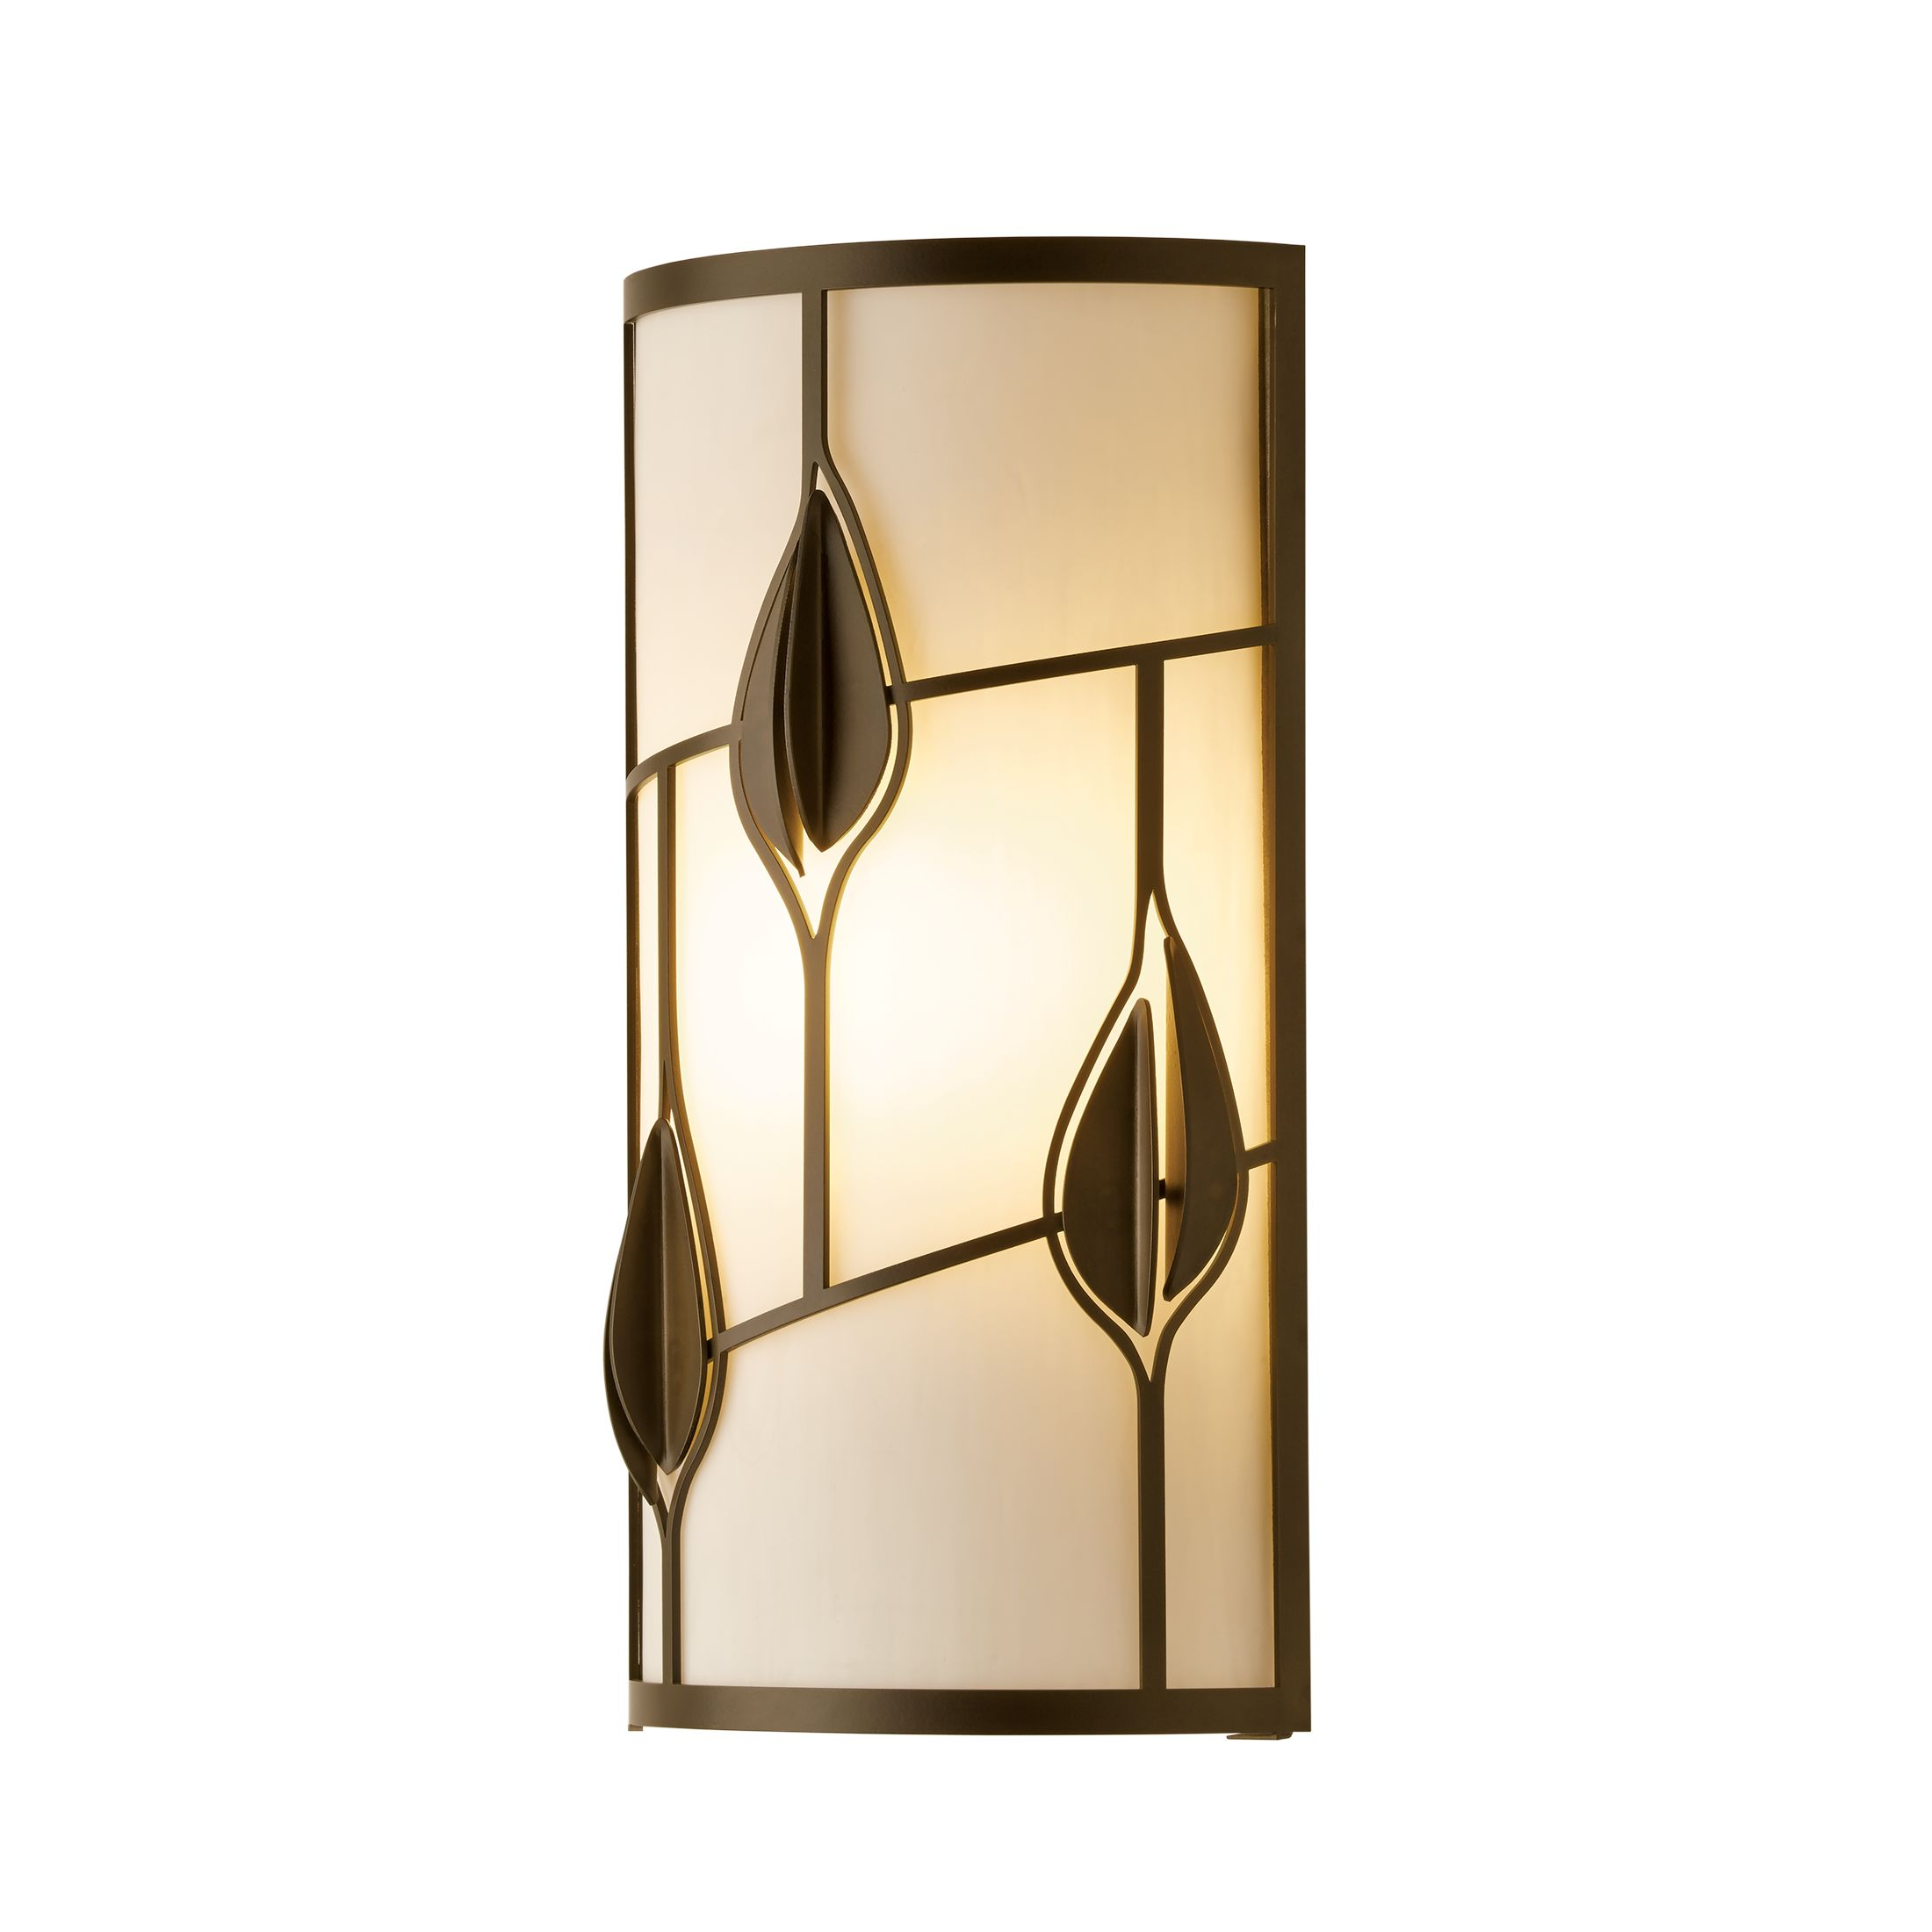 Hubbardton Forge Flora Sconce: Traditional 1 Light Sconce